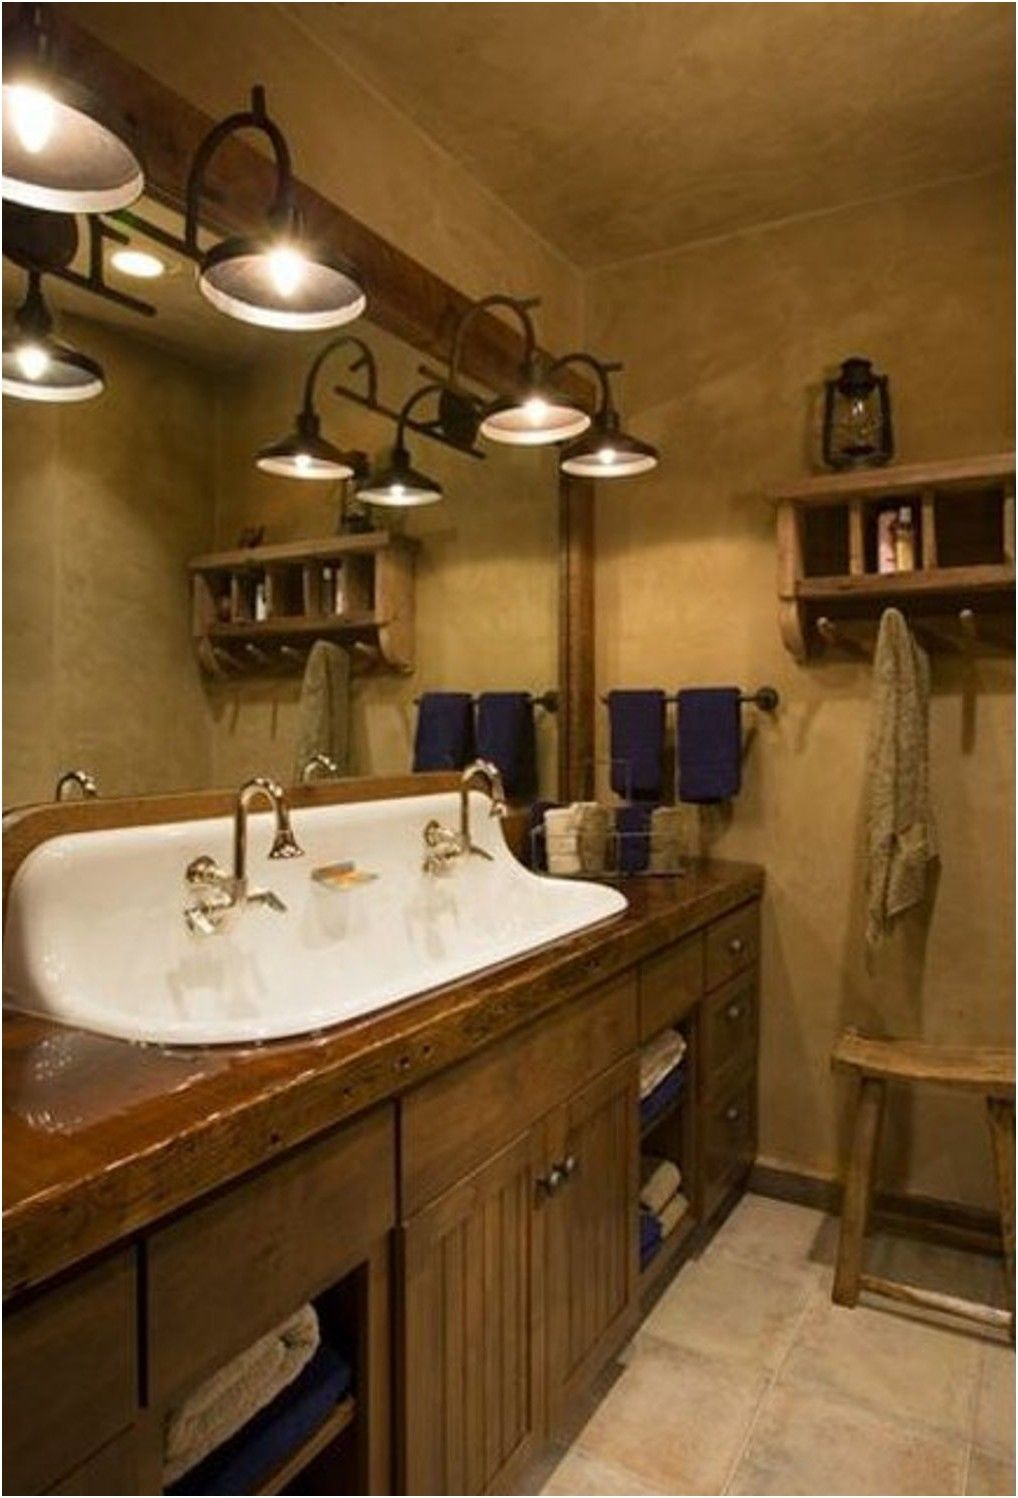 The most awesome rustic bathroom lighting the new way home decor